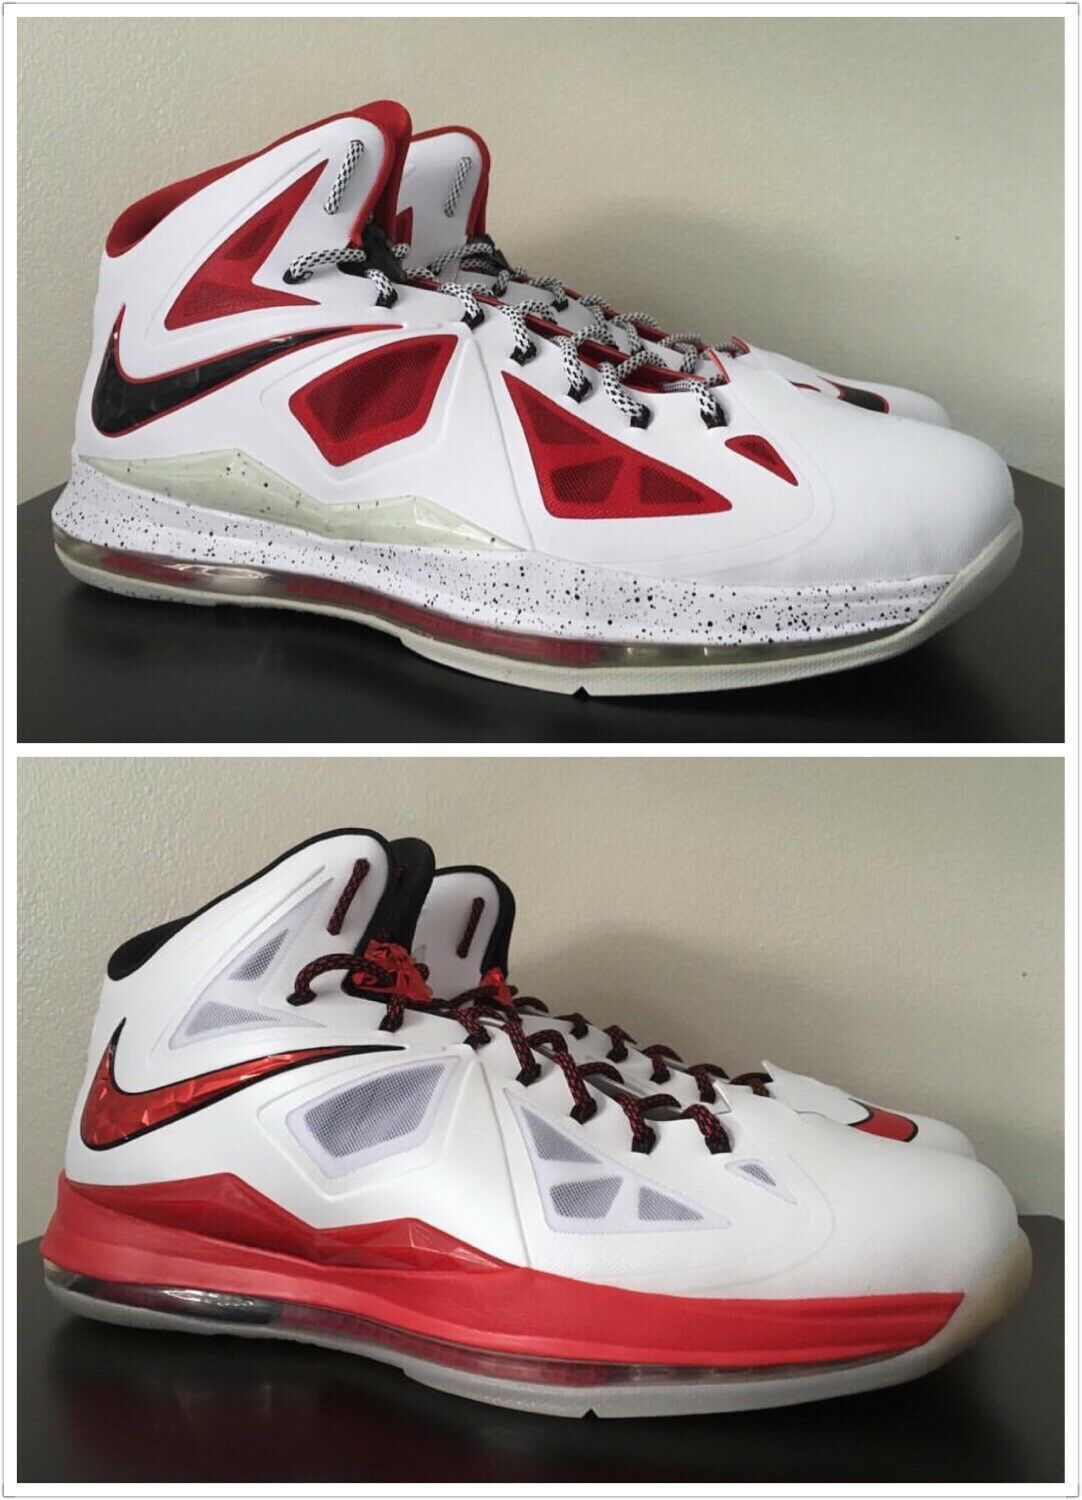 US16 Lebron James 10 PE 2 pairs sample promo game issue player exclusive